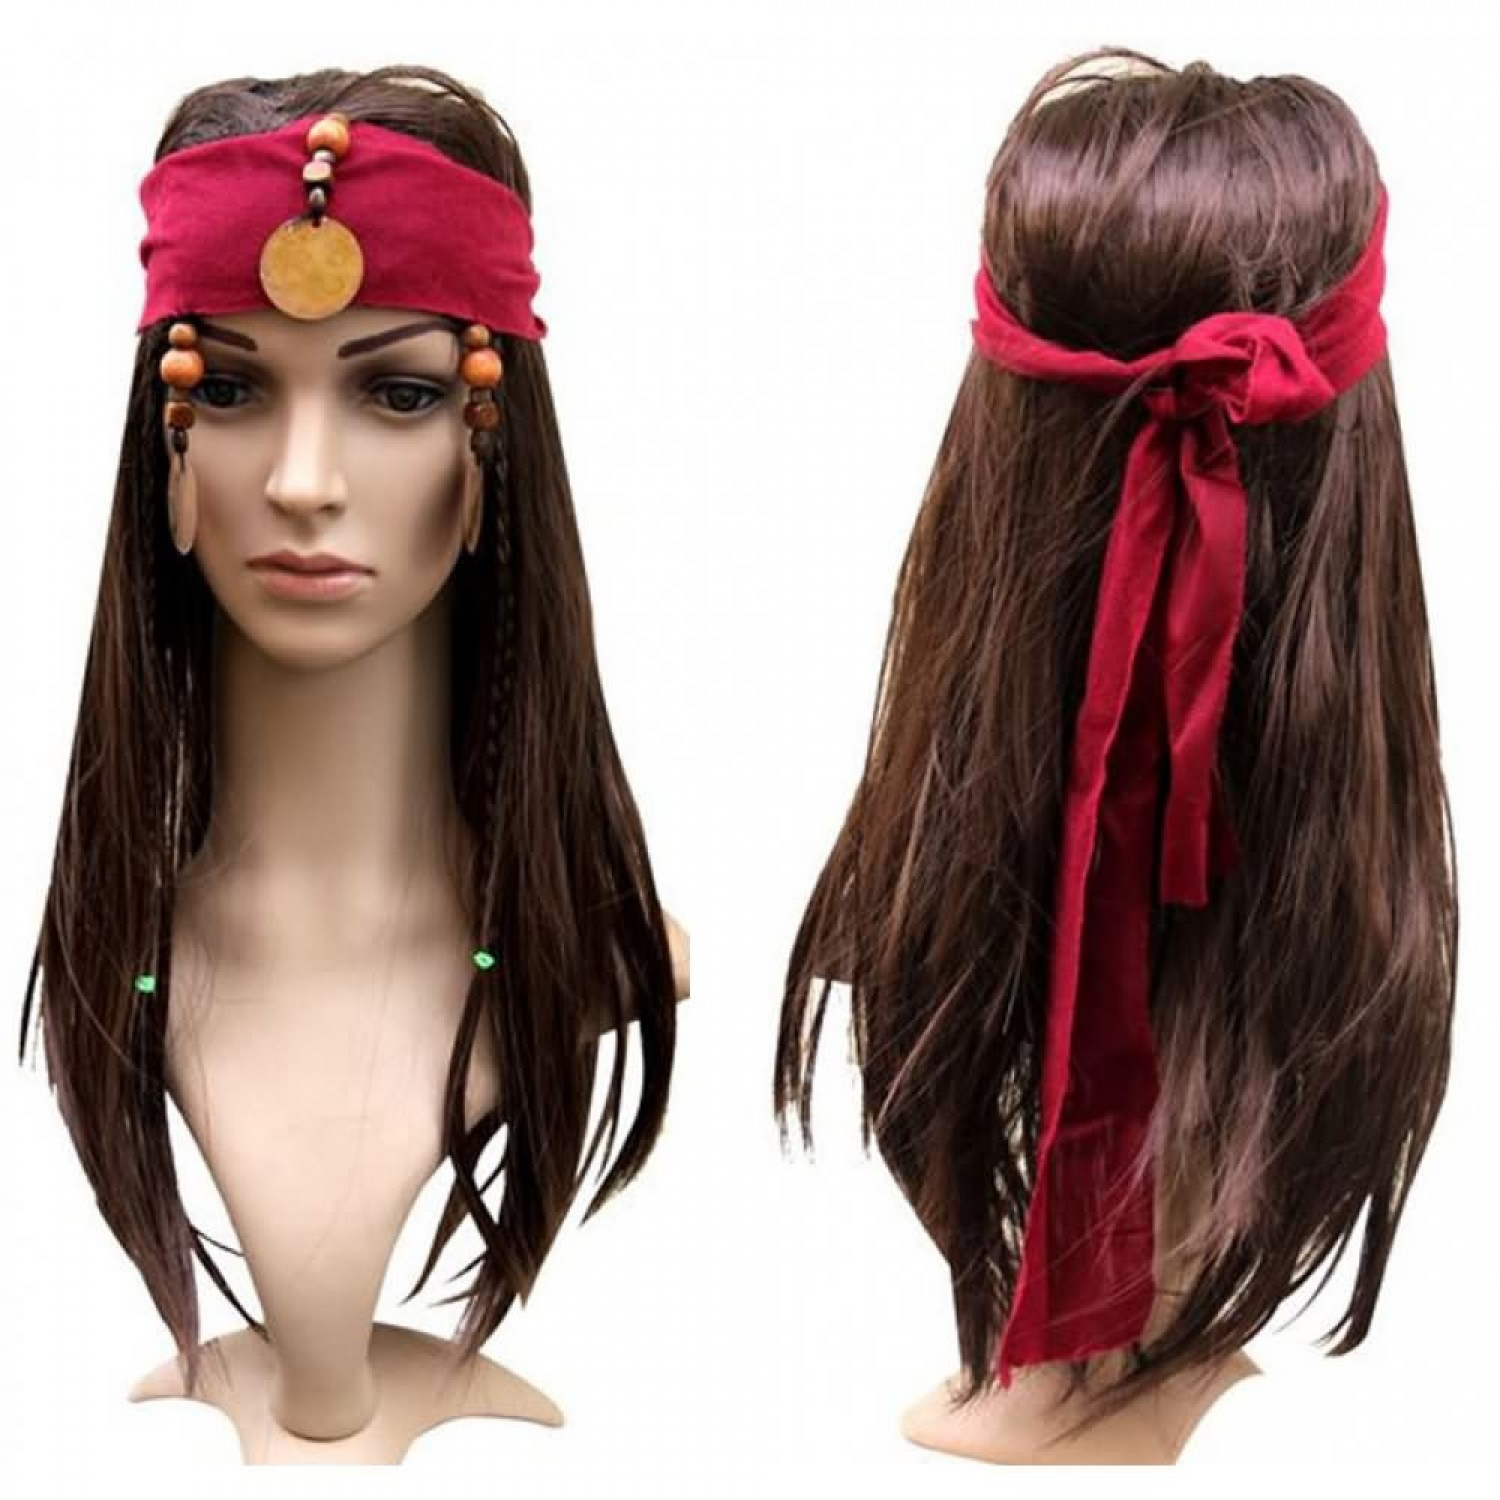 Pirates of the Caribbean Jack Sparrow Costume Cosplay Hair Wig